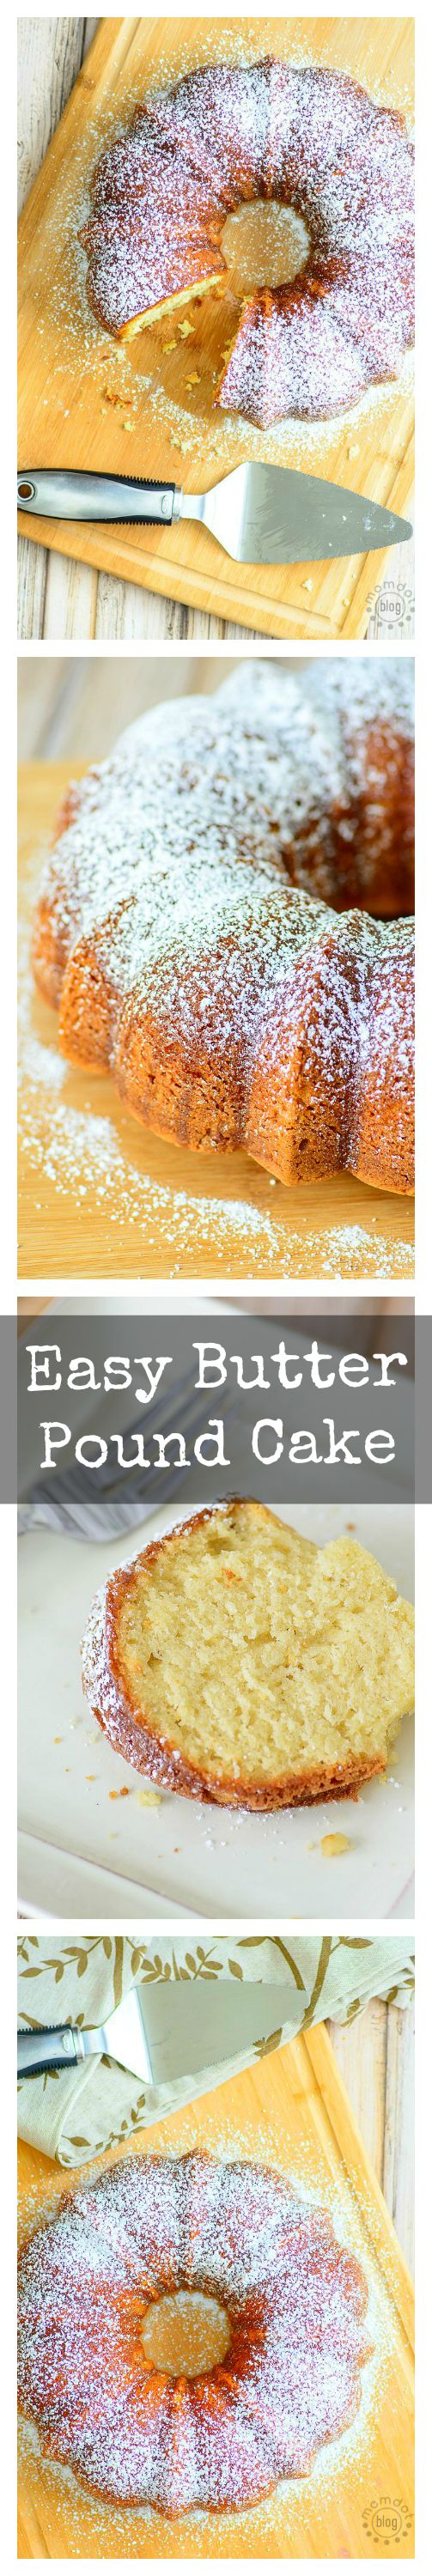 easy butter pound cake recipe